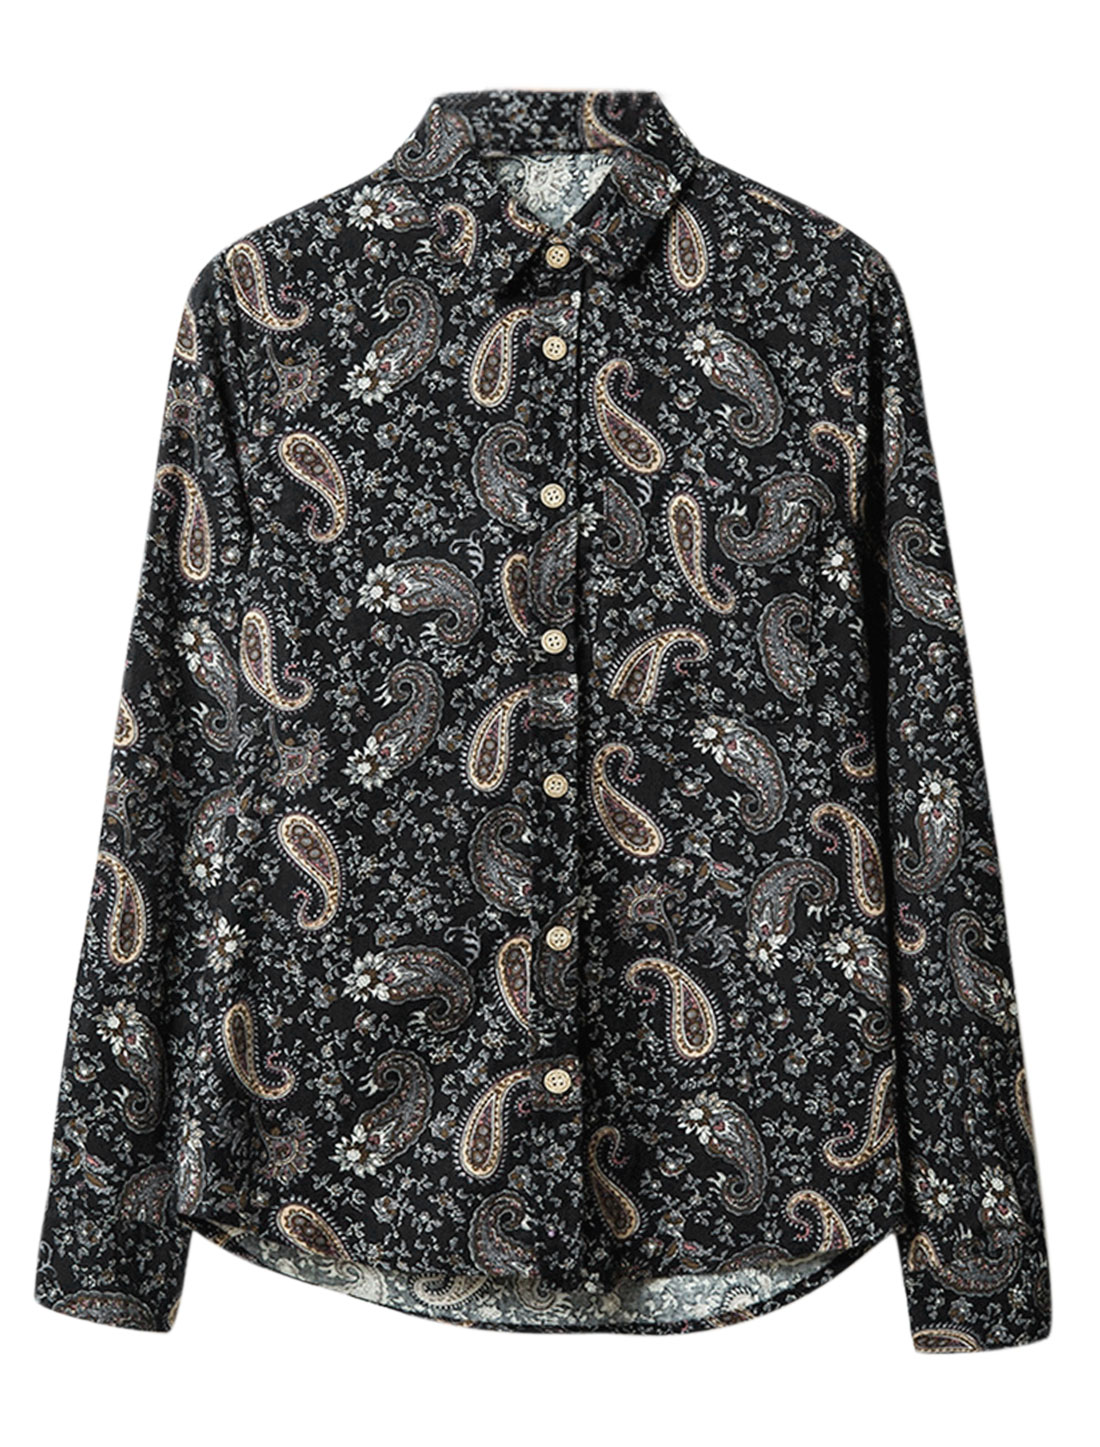 Men Point Collar Long Sleeves Paisleys Floral Prints Chic Shirt Navy Blue M